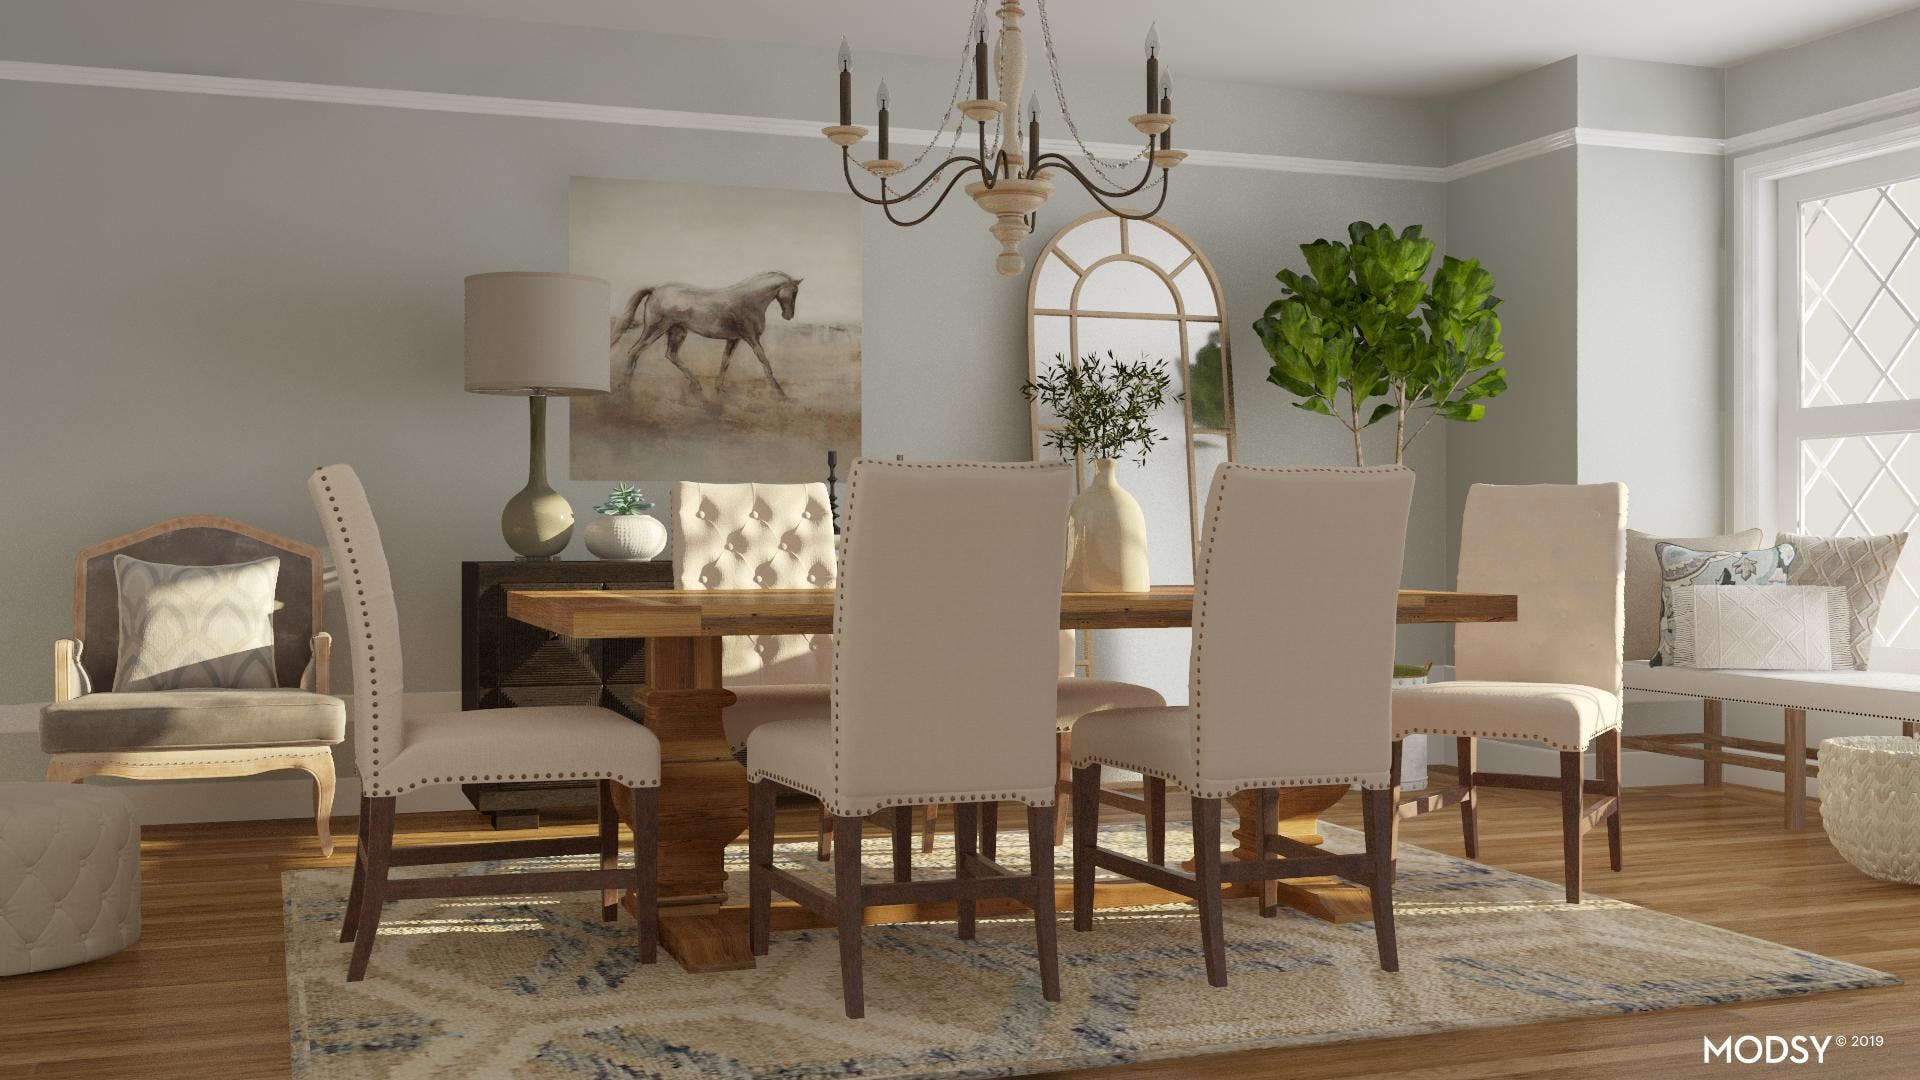 A Neutral Dining Room with Rustic Flair